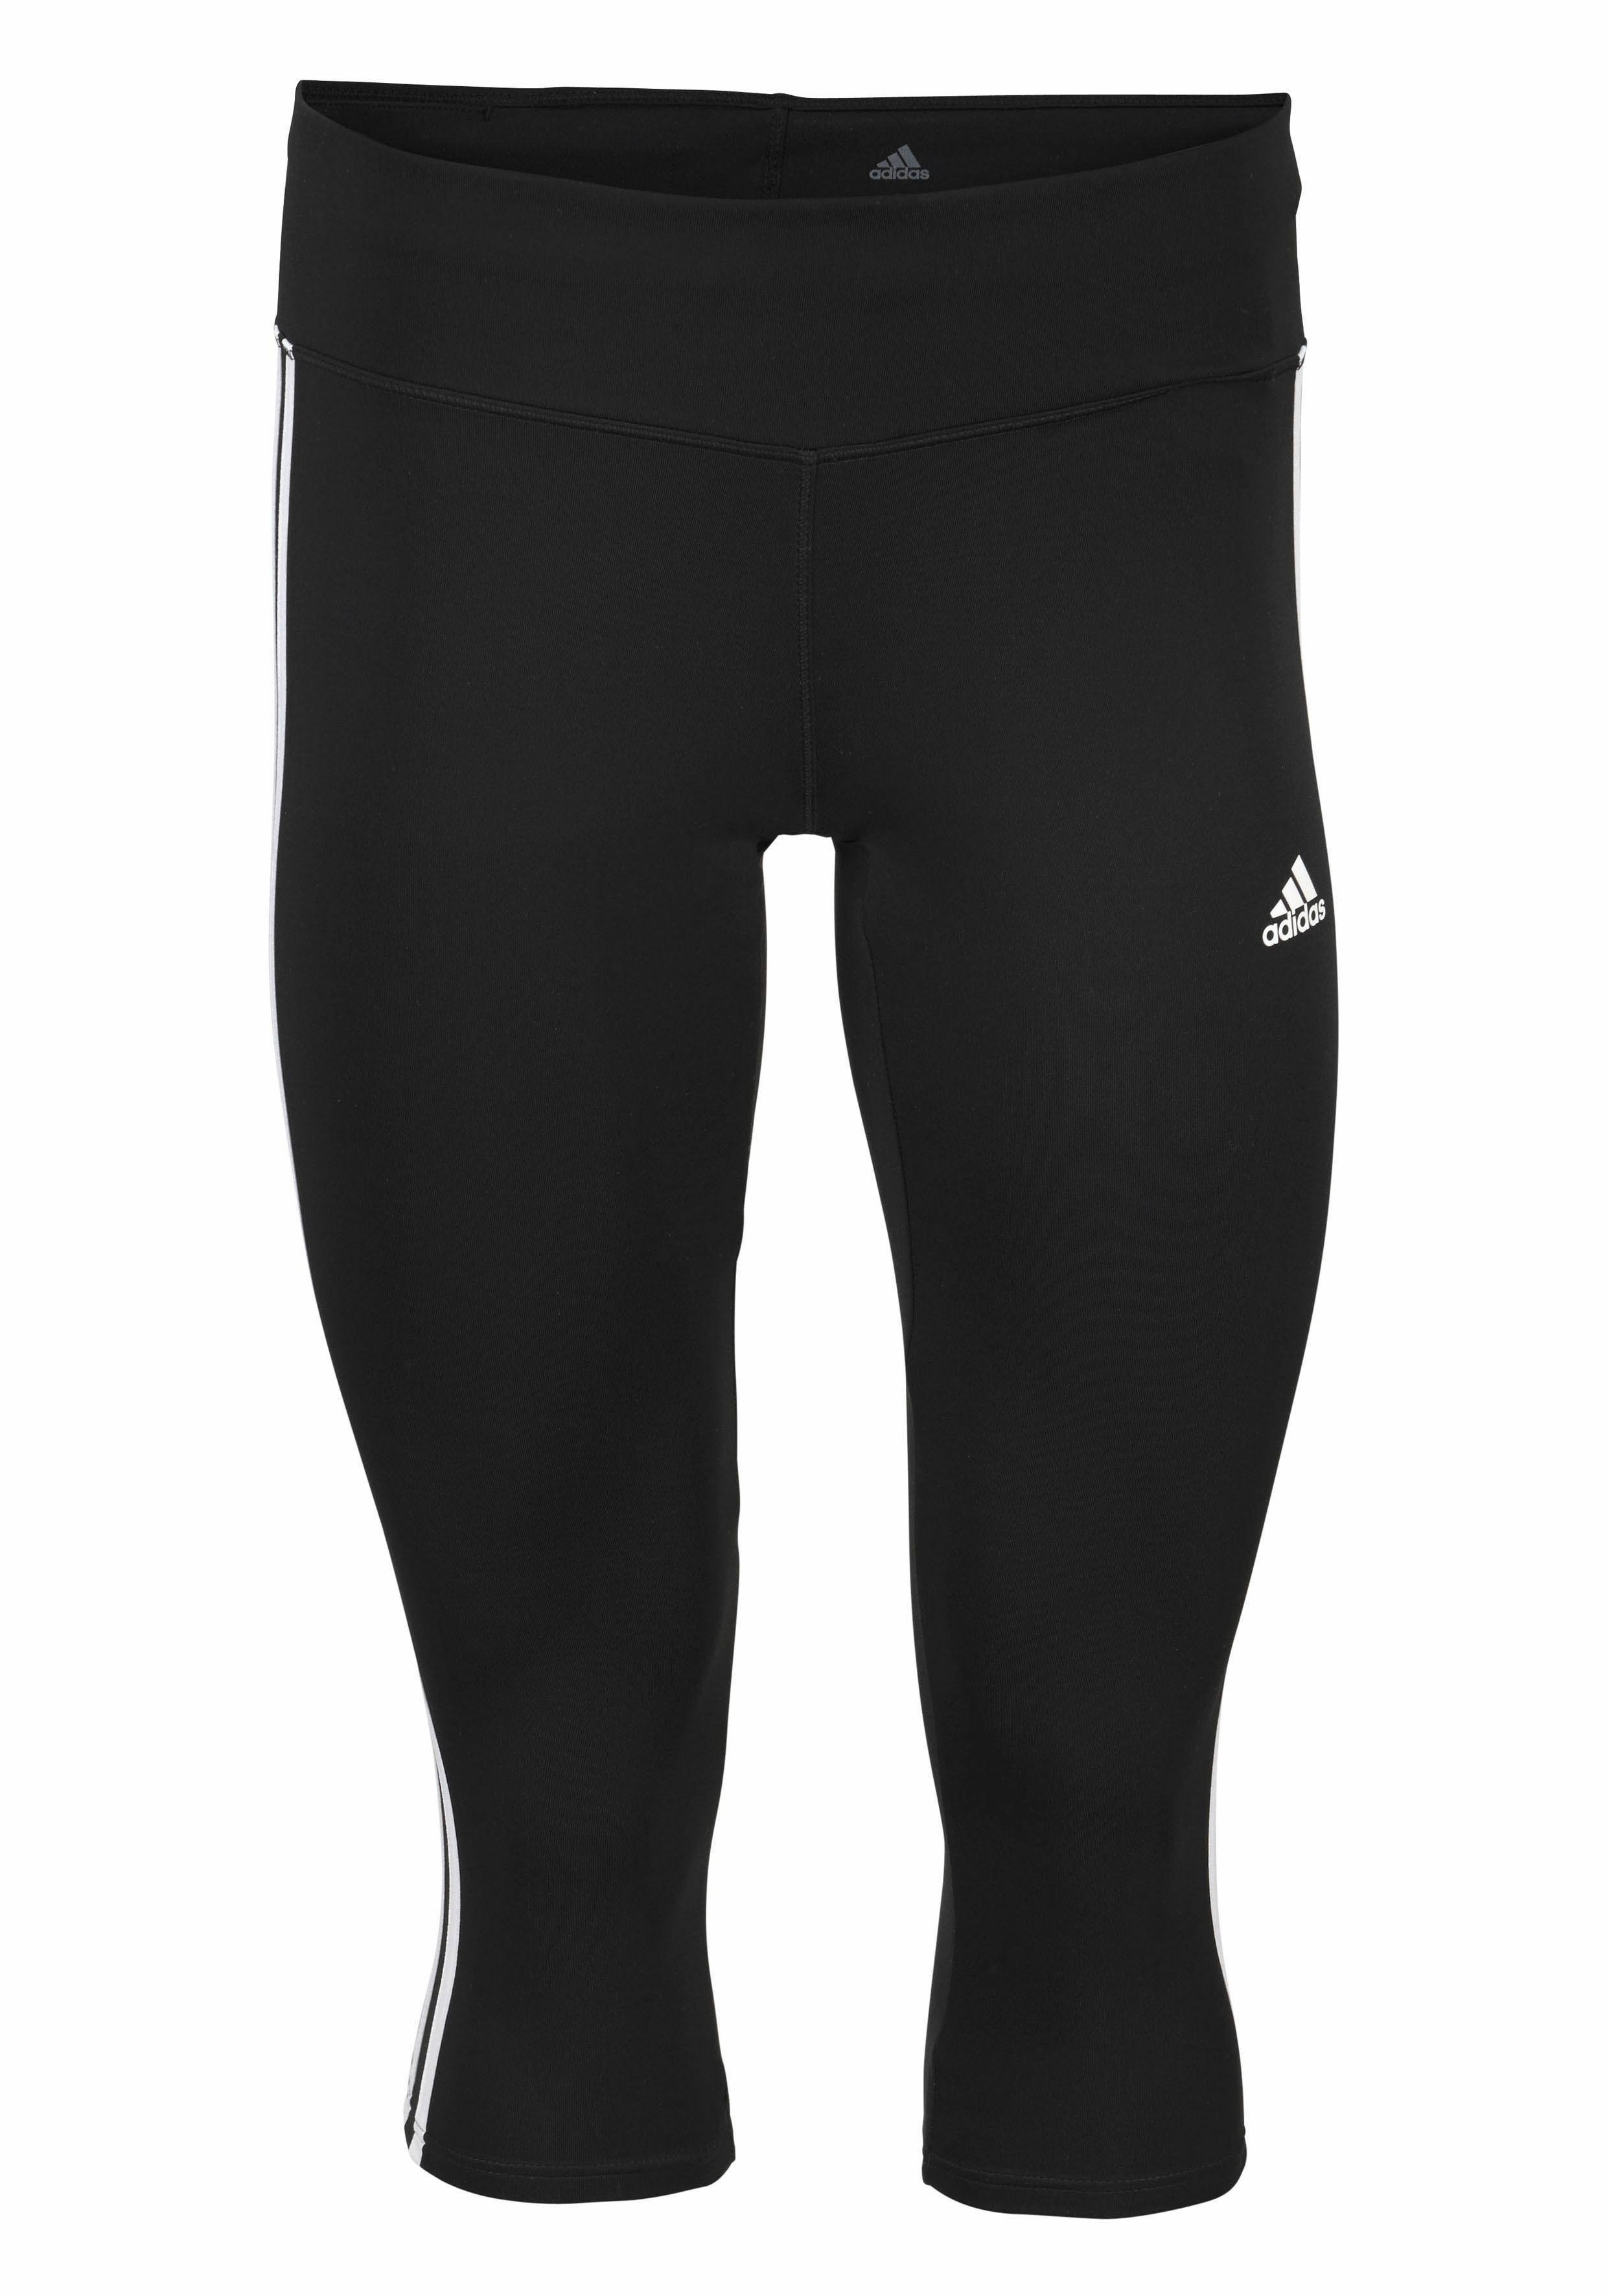 Adidas Performance 3 4 Online Shoppen Functionele Tightsd2m Rr 3s OPk8N0nwX